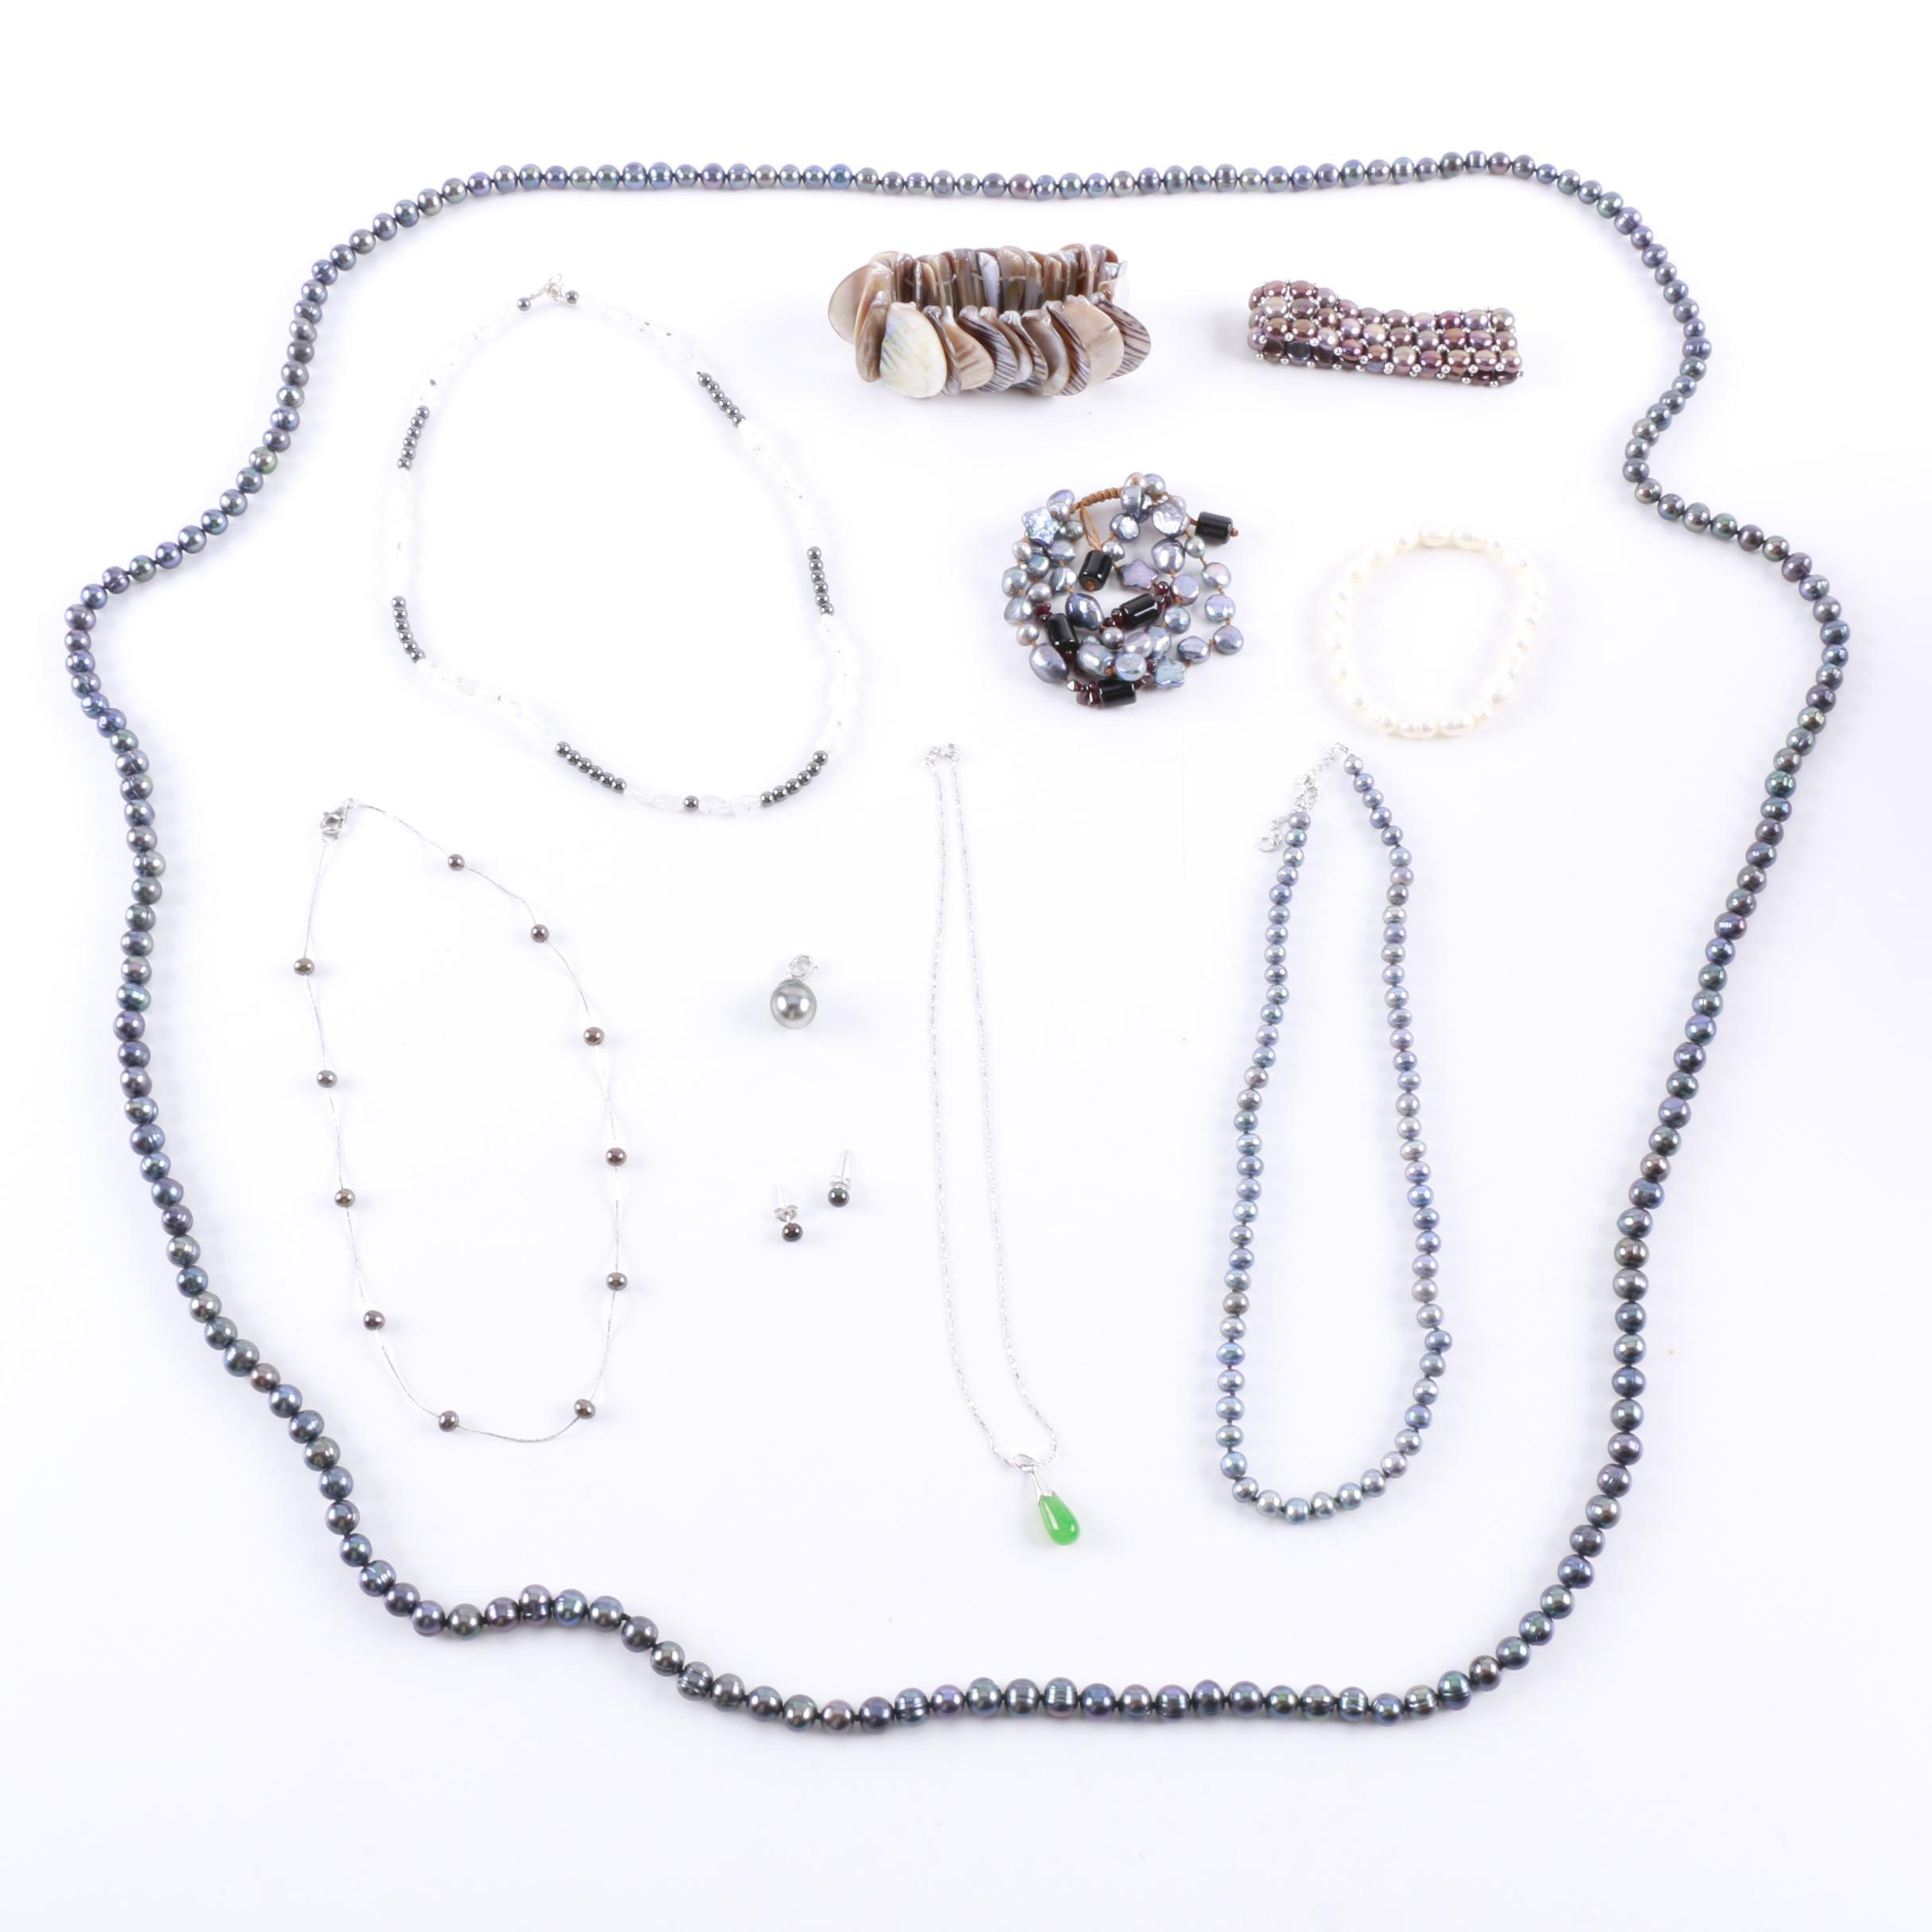 Grouping of Jewelry Including Sterling Silver and Costume